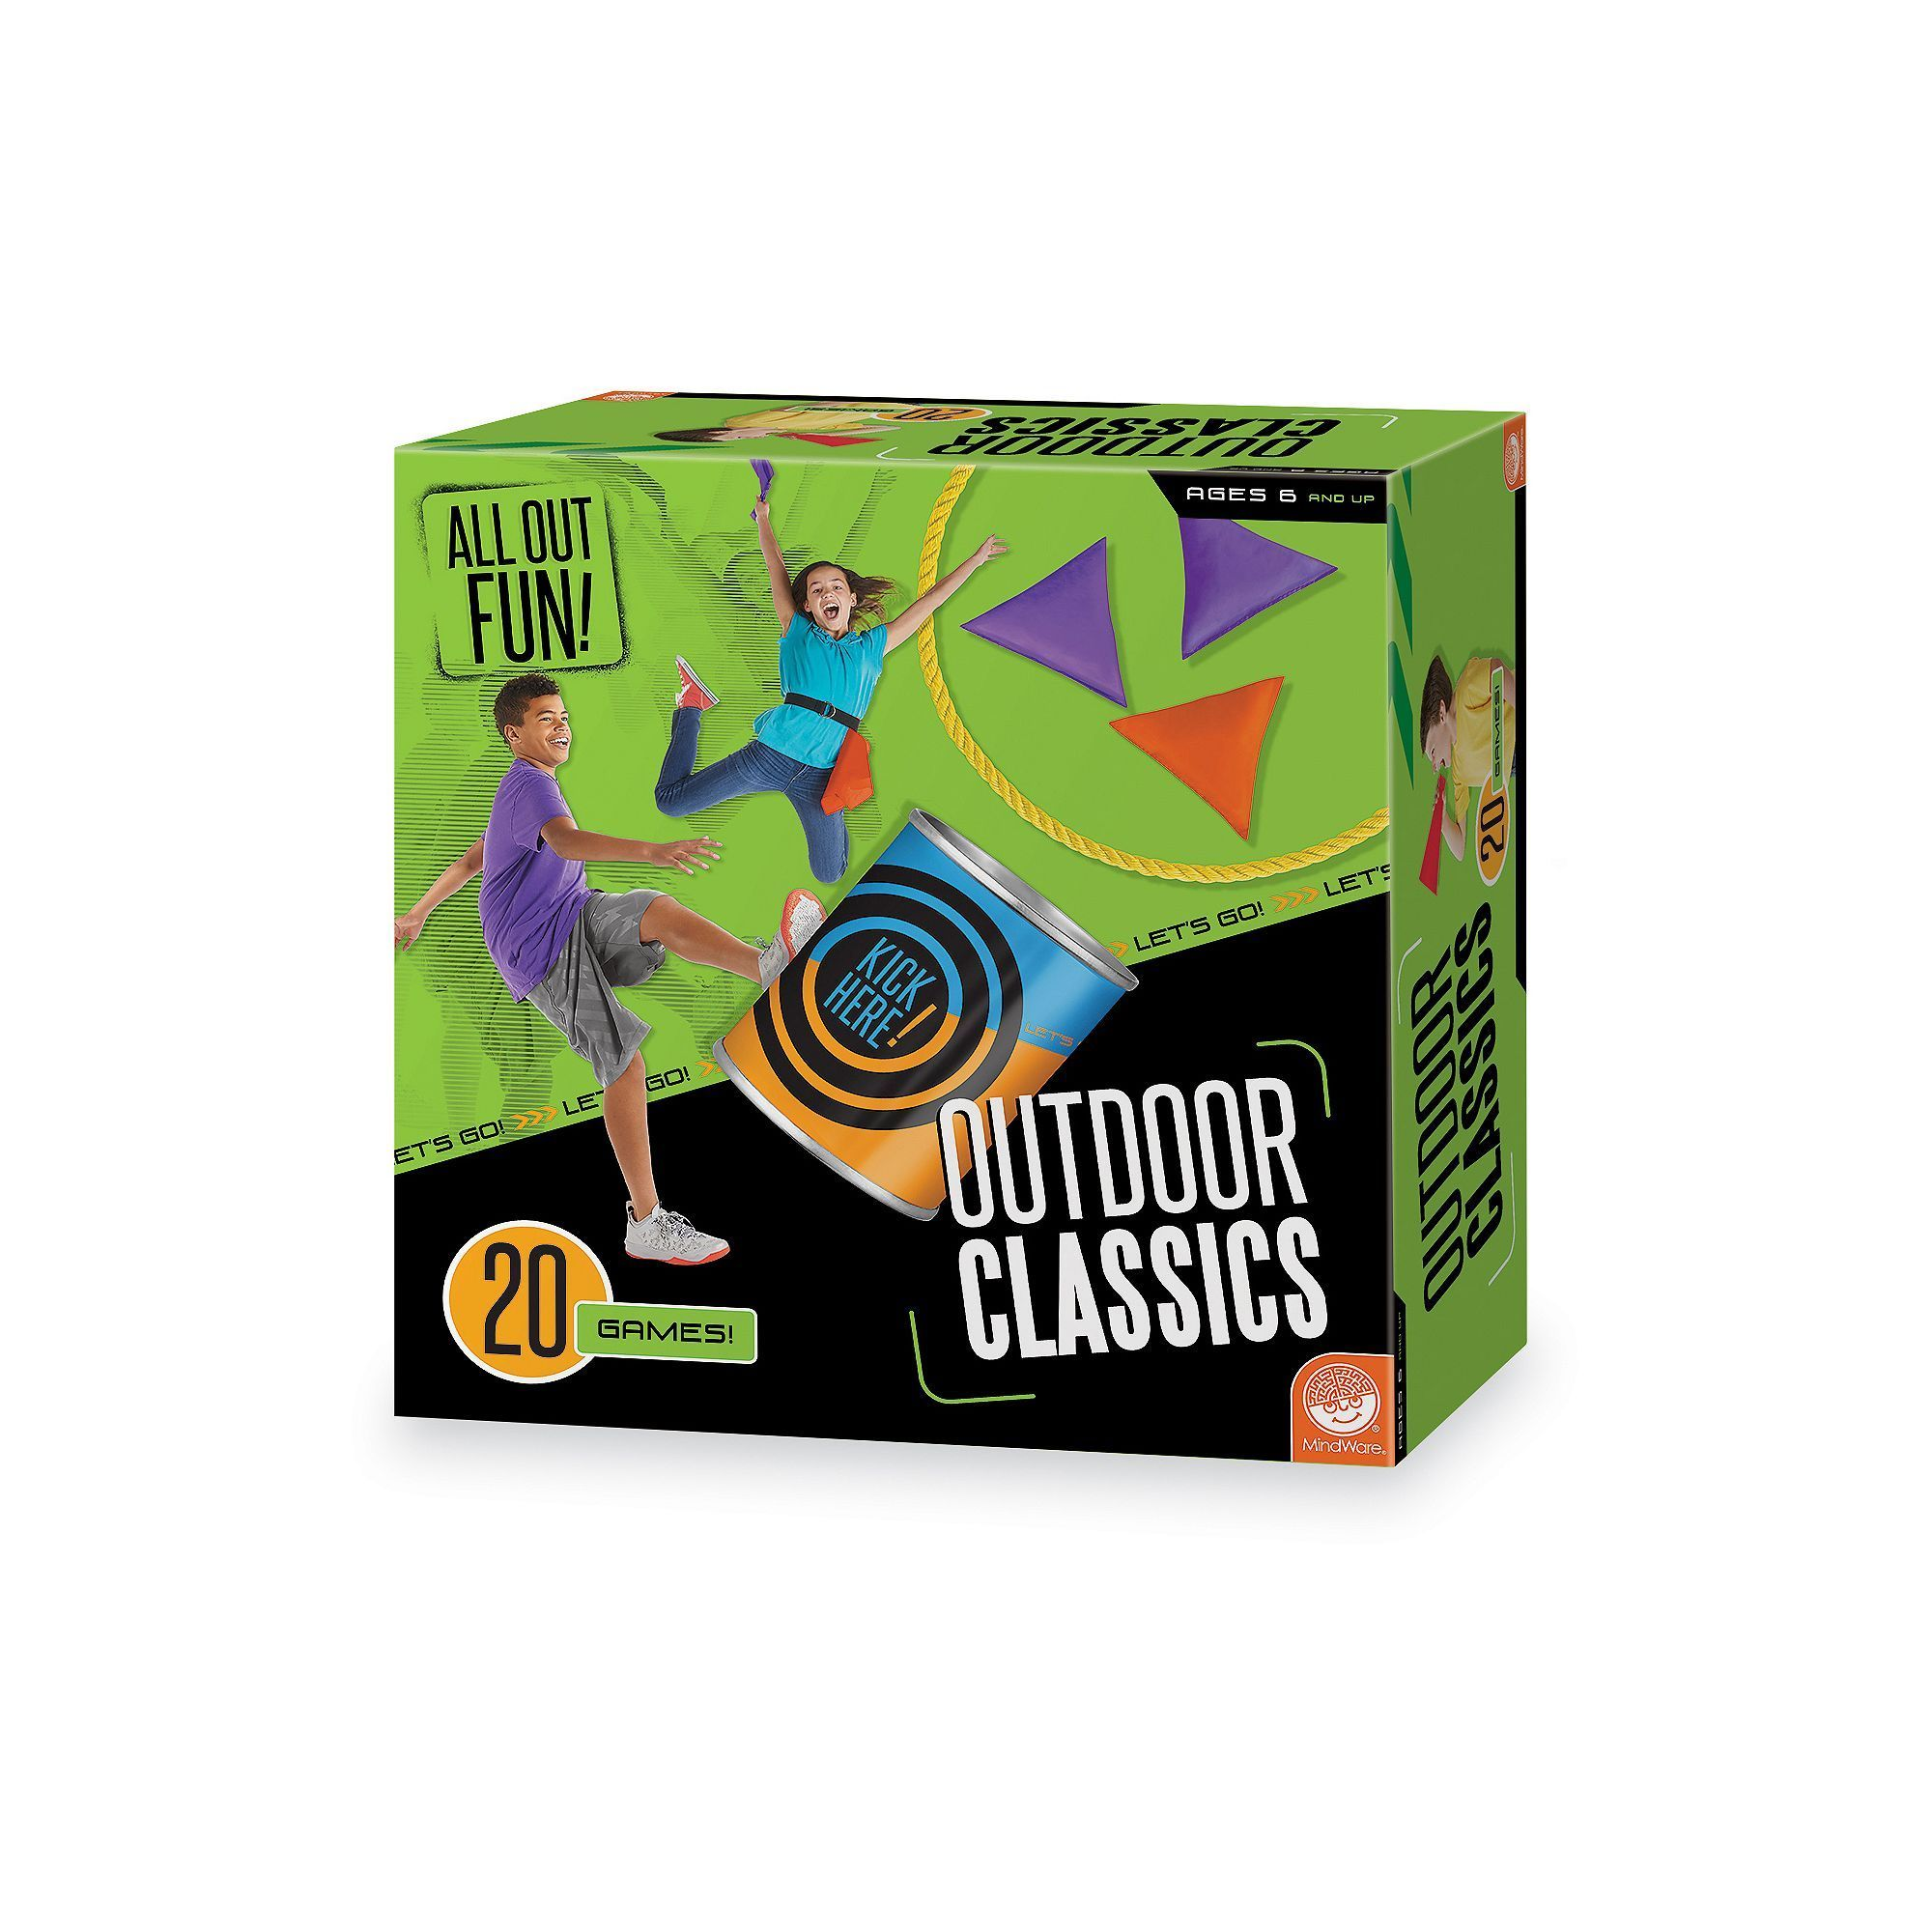 All Out Fun Outdoor Classics 20 Game Set by MindWare Multicolor